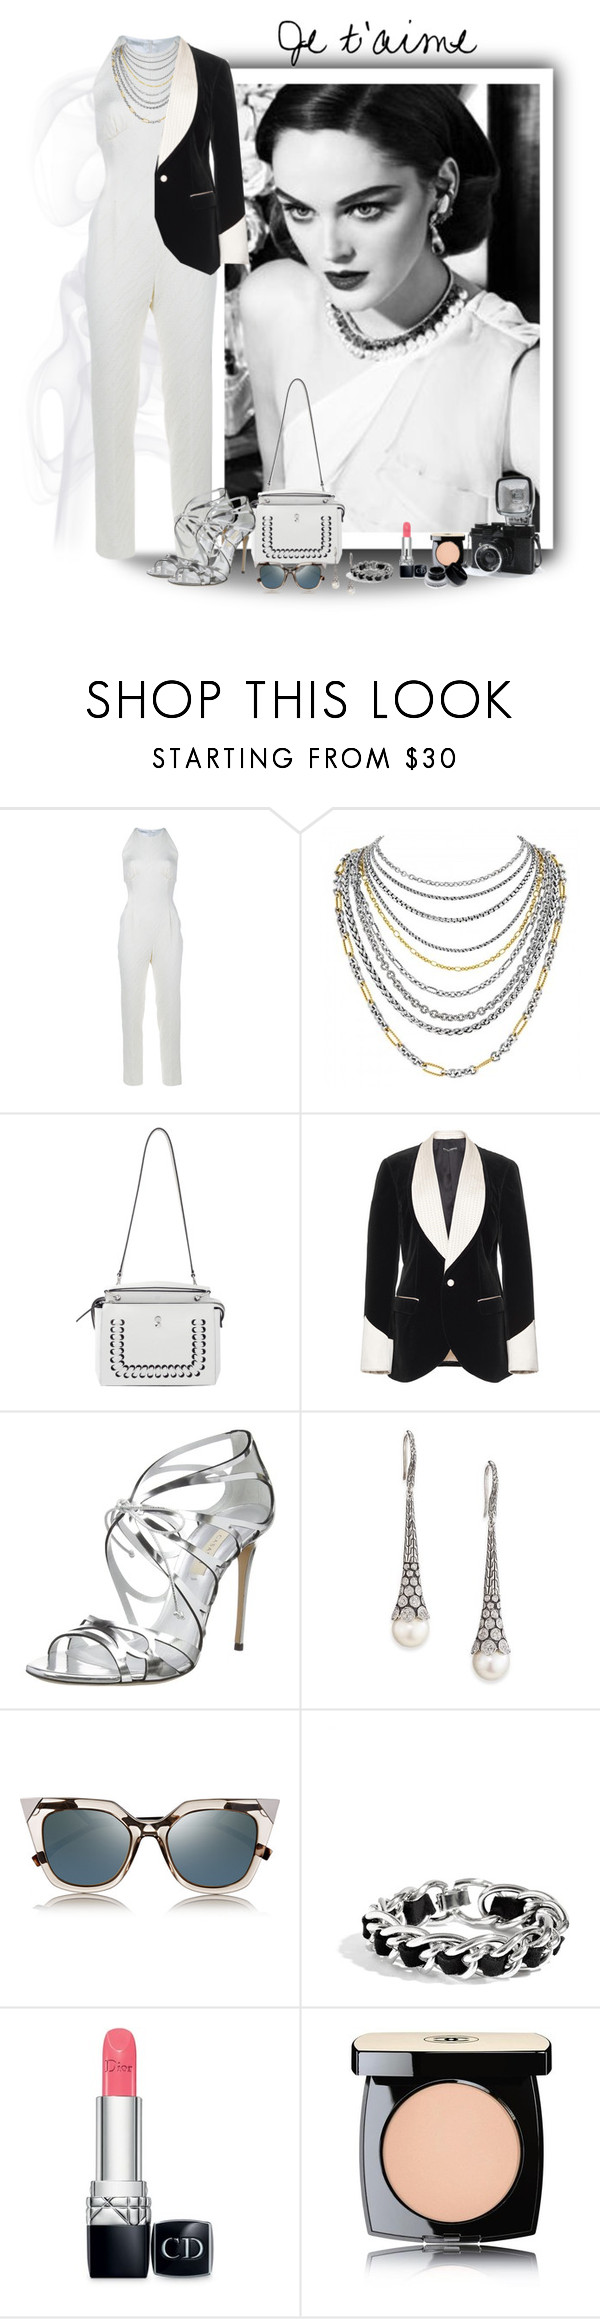 """Tell me I'm wrong"" by akhesa10 ❤ liked on Polyvore featuring Emilia Wickstead, David Yurman, Fendi, Dolce&Gabbana, Casadei, John Hardy, GUESS, Christian Dior, Chanel and Lomography"